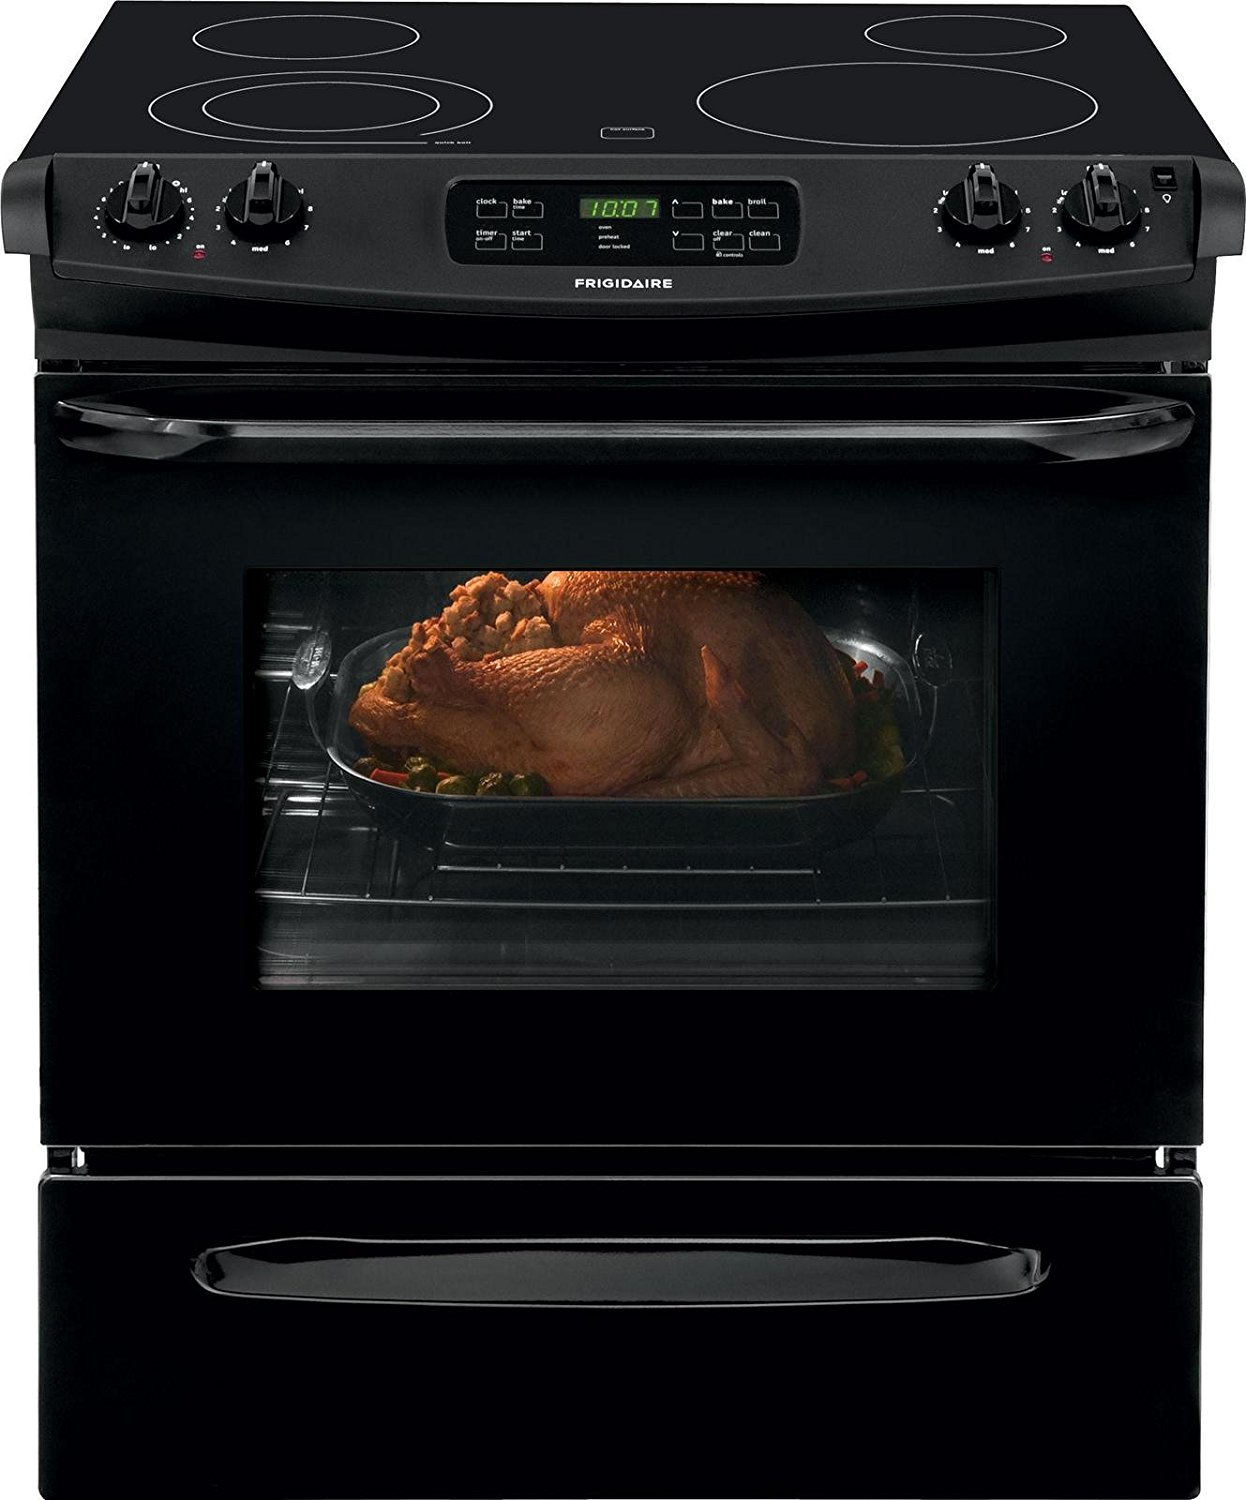 Frigidaire 30-inch Slide-In Electric Range